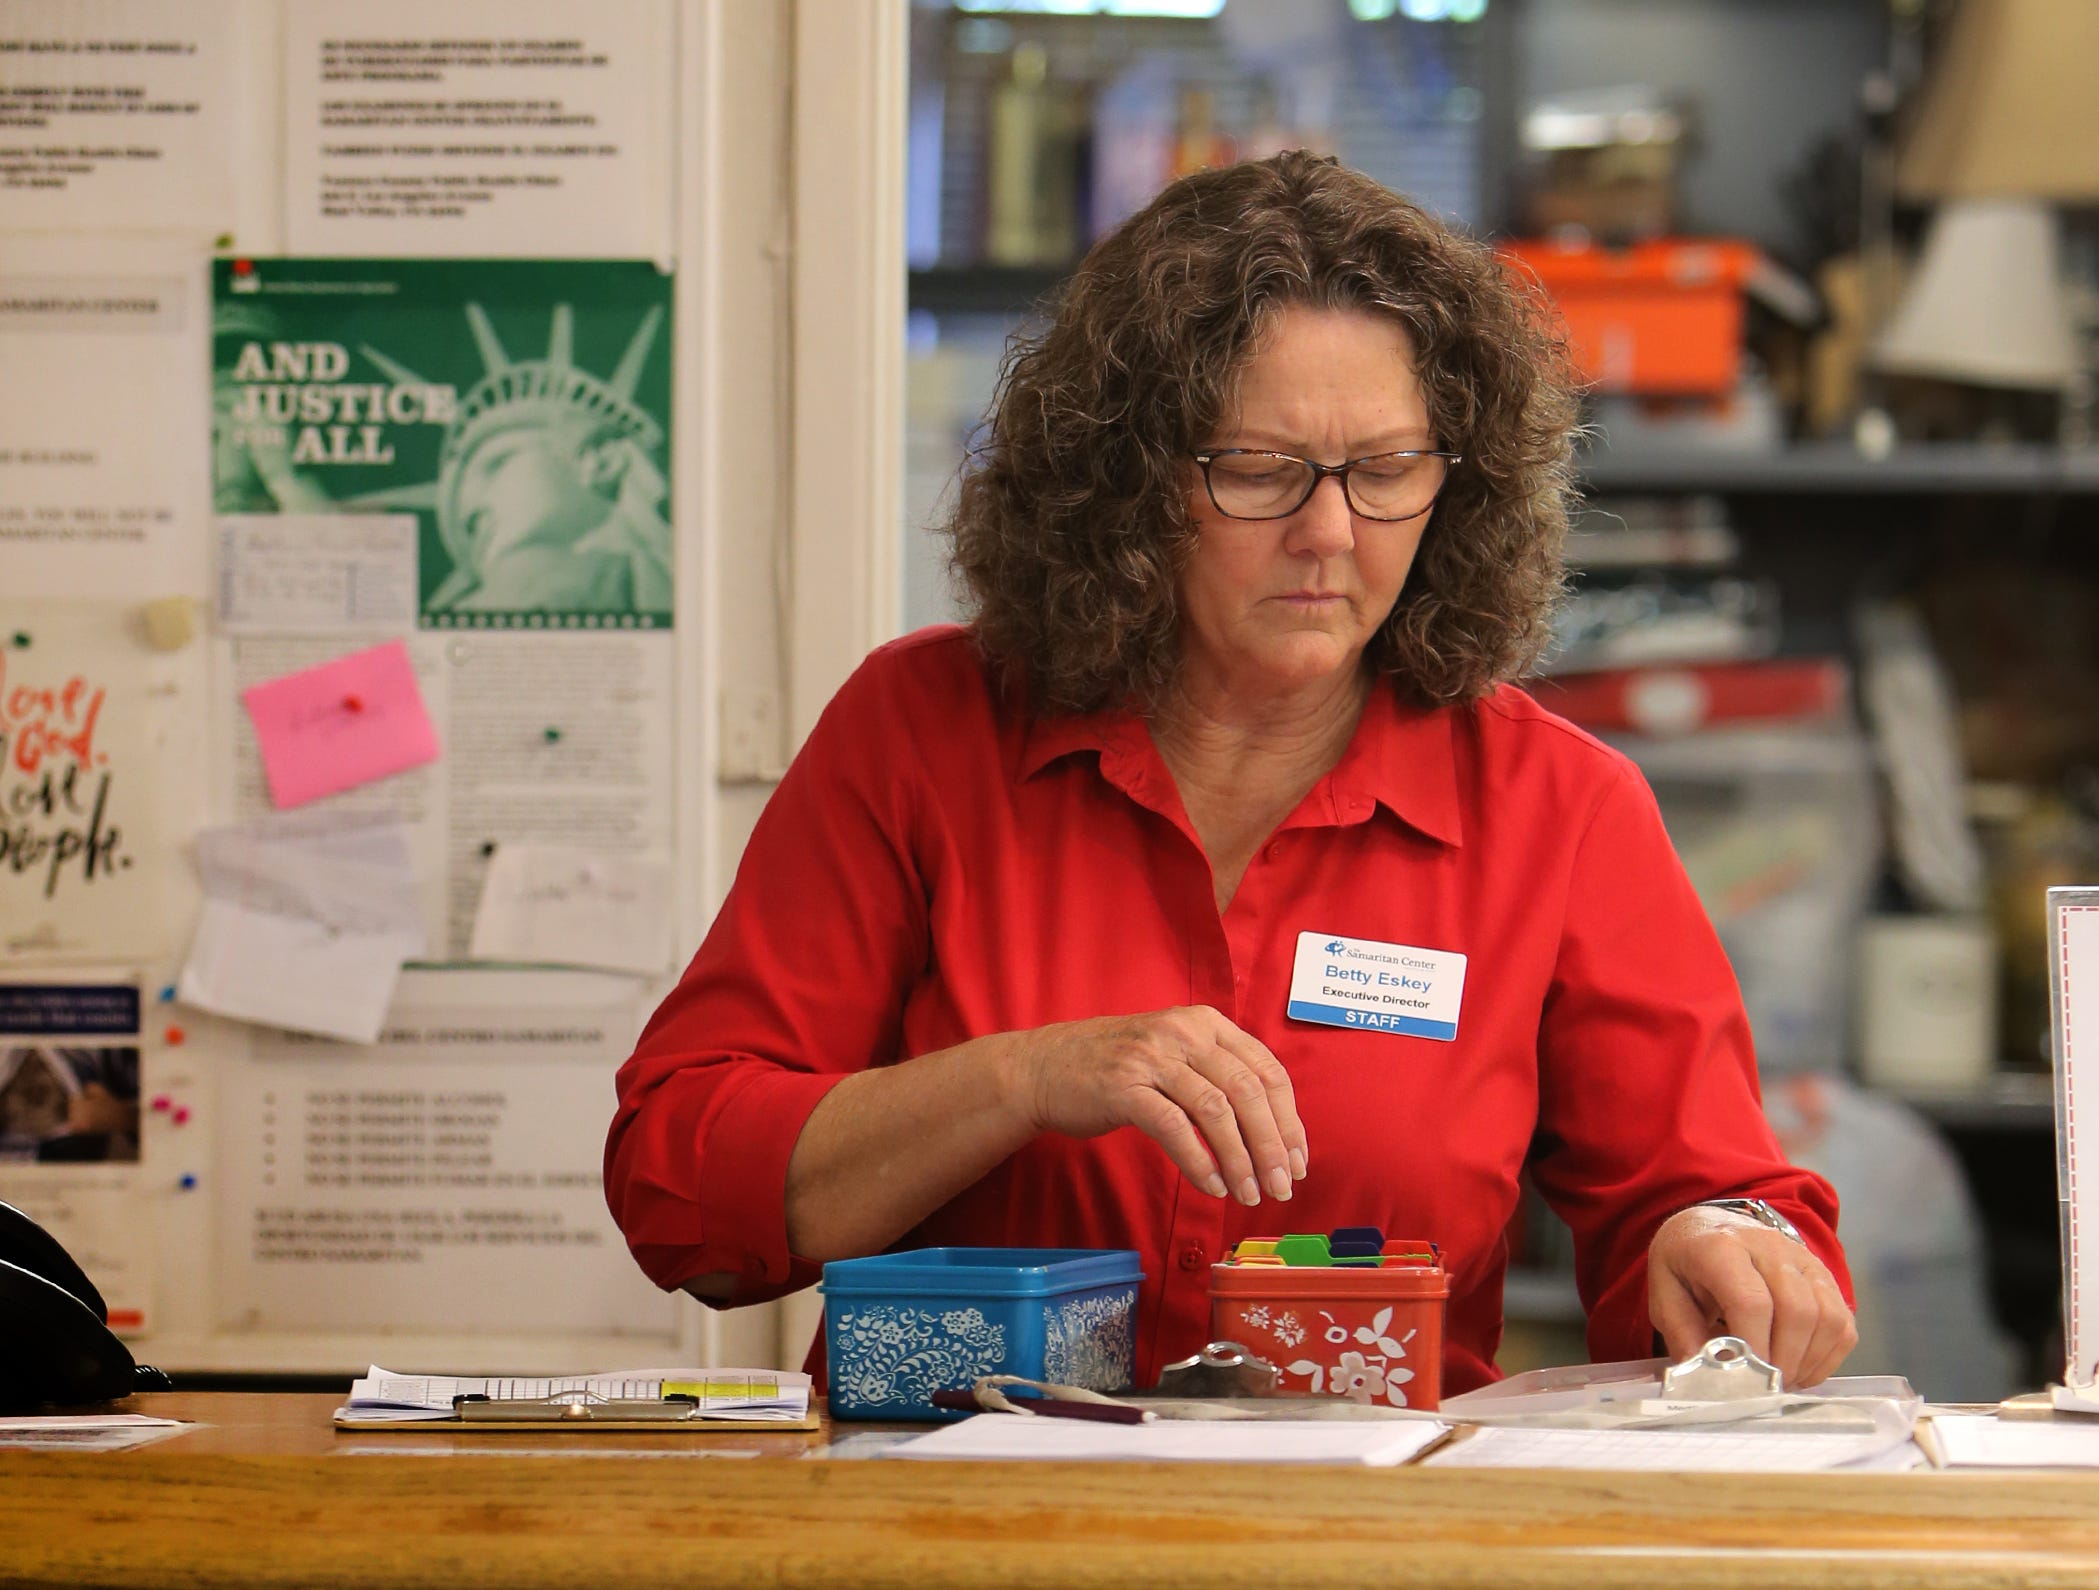 Samaritan Center Executive Director Betty Eskey works at the front desk of the Simi Valley homeless shelter. After 13 years at the center, Eskey will be retiring in July on advice of doctors..